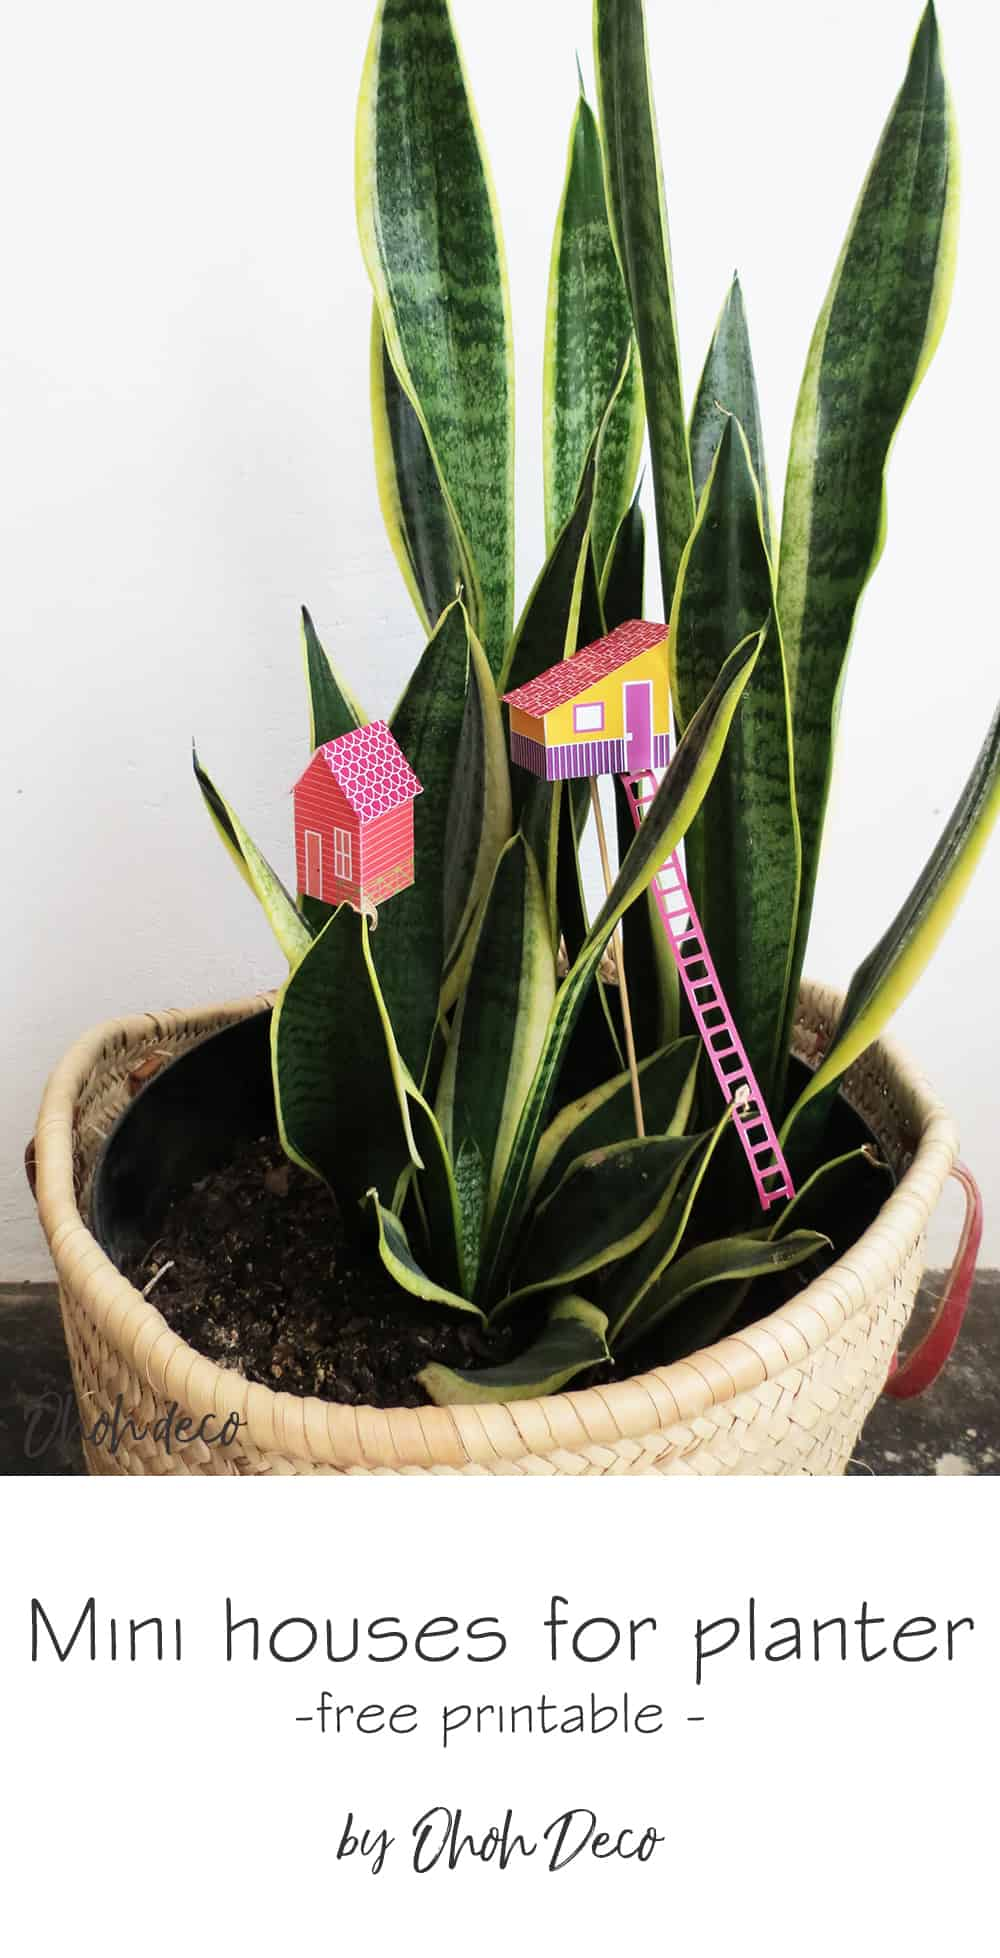 free house printable to decorate your planters